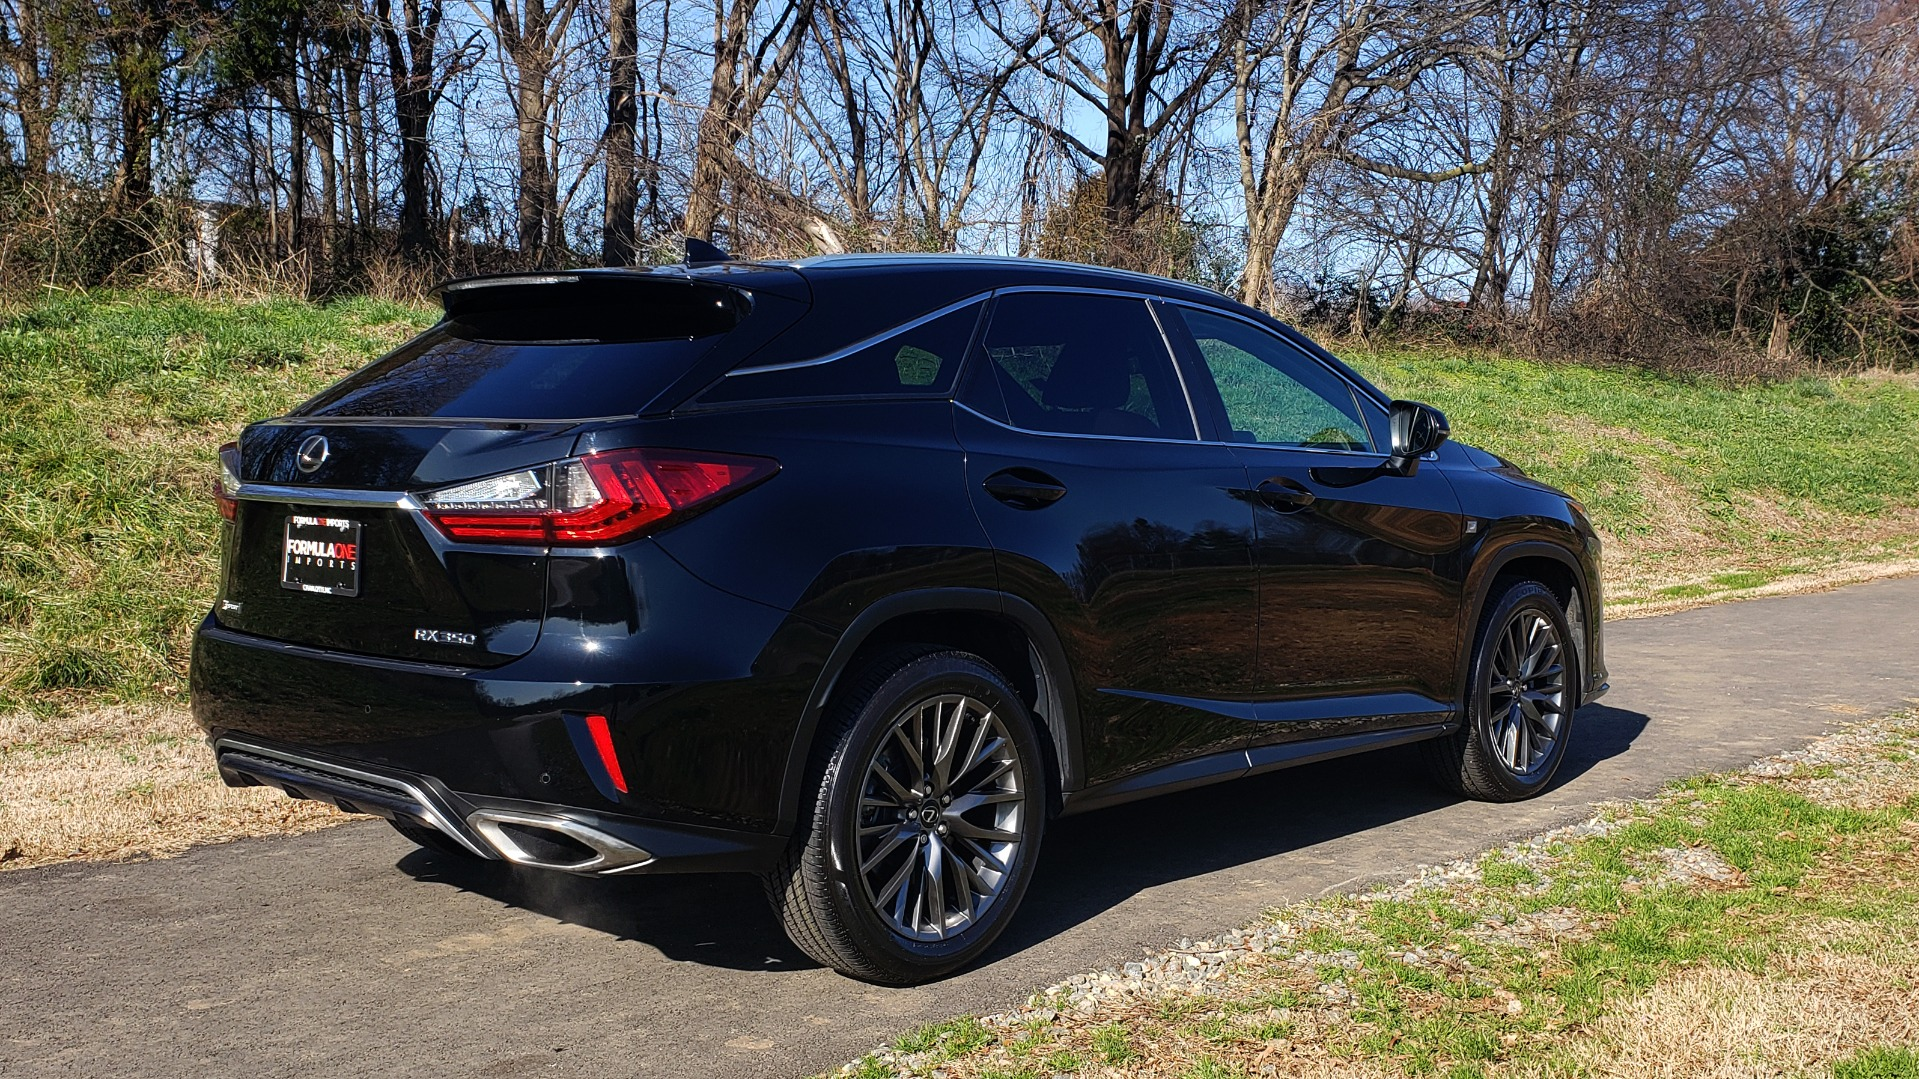 Used 2017 Lexus RX350 AWD F-SPORT / NAV / SUNROOF / BSM / PARK ASST / TOWING / REARVIE for sale Sold at Formula Imports in Charlotte NC 28227 6